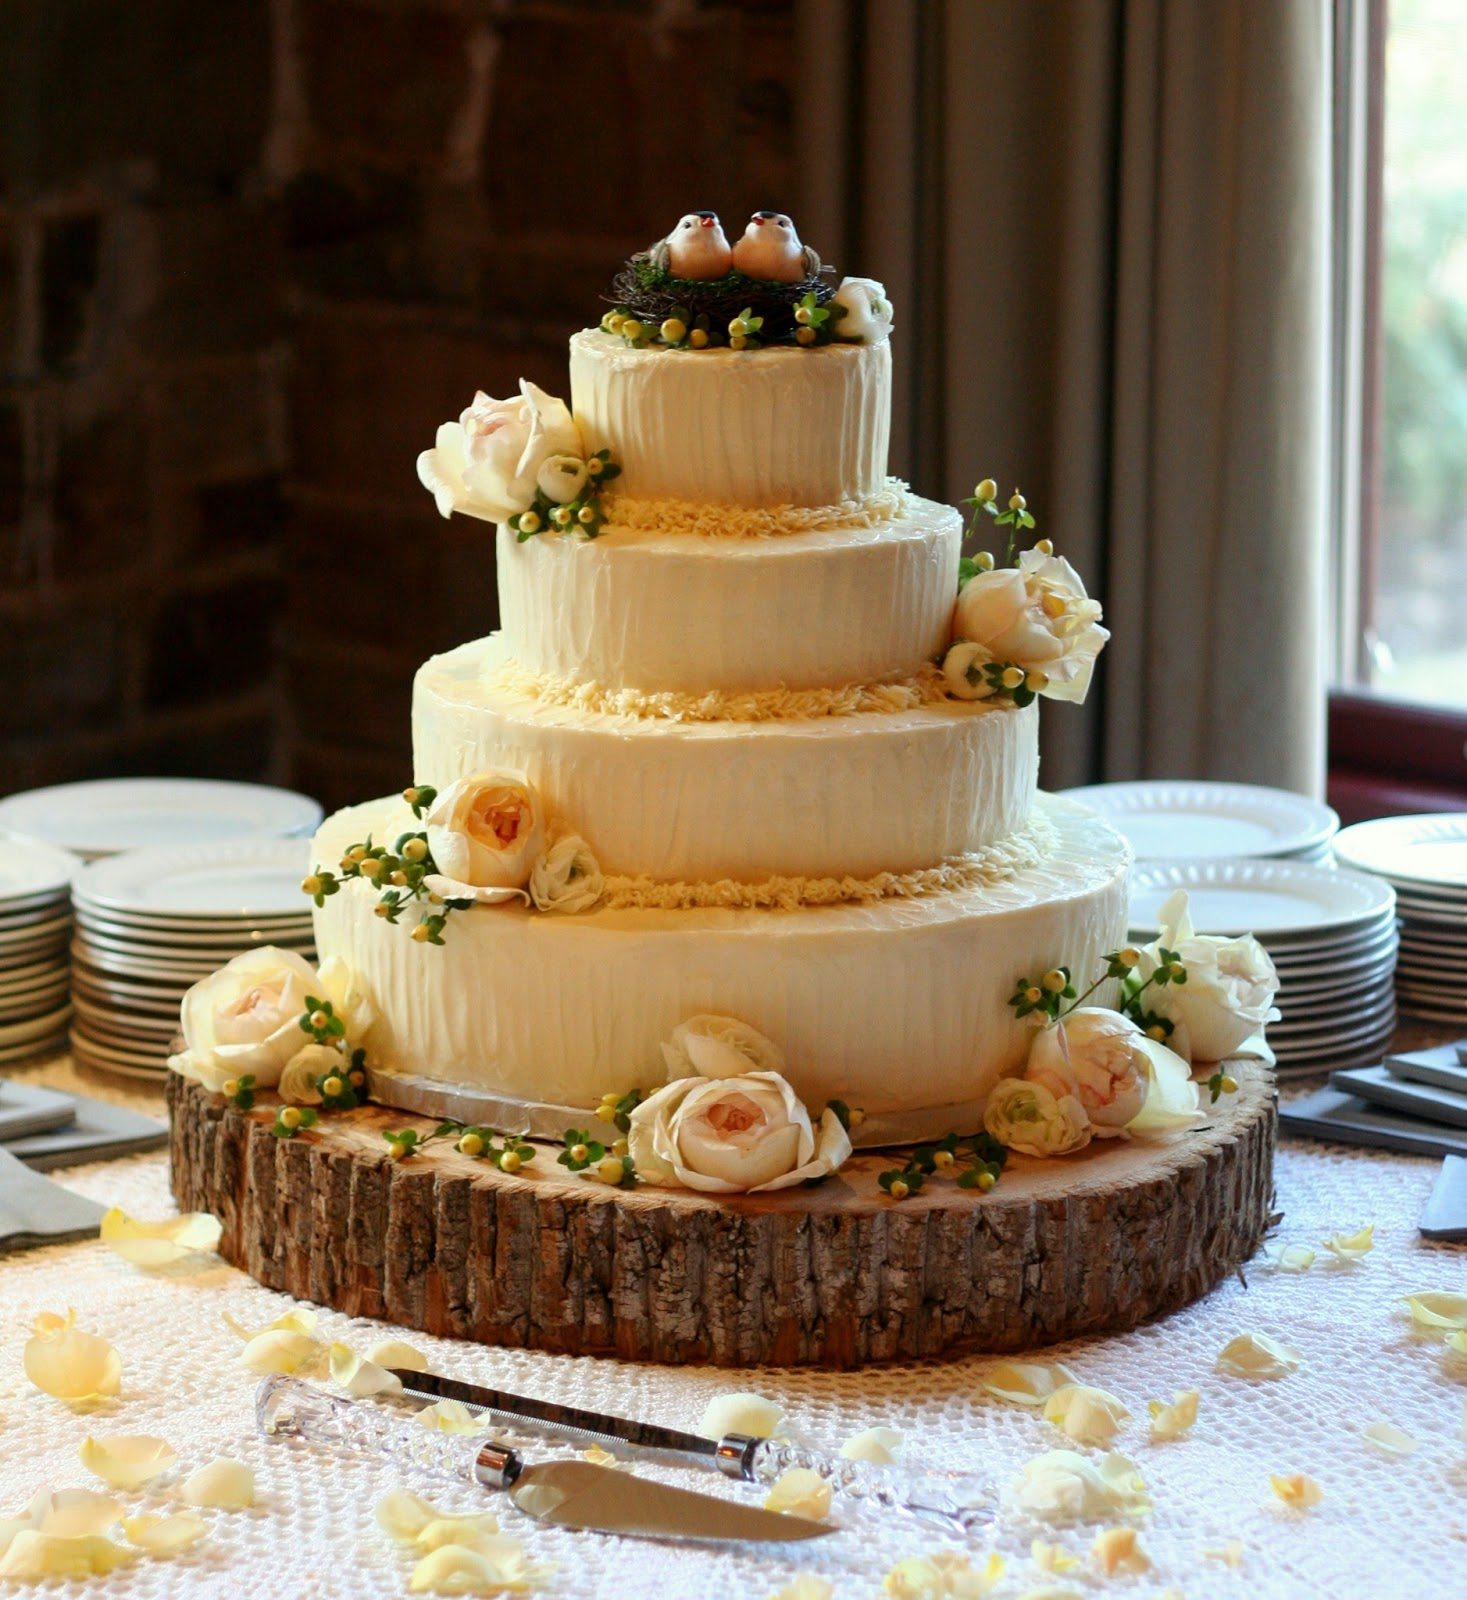 Cake Design Ideas For Wedding : 6 Stunning Rustic Wedding Cake Ideas - Wedding Cakes